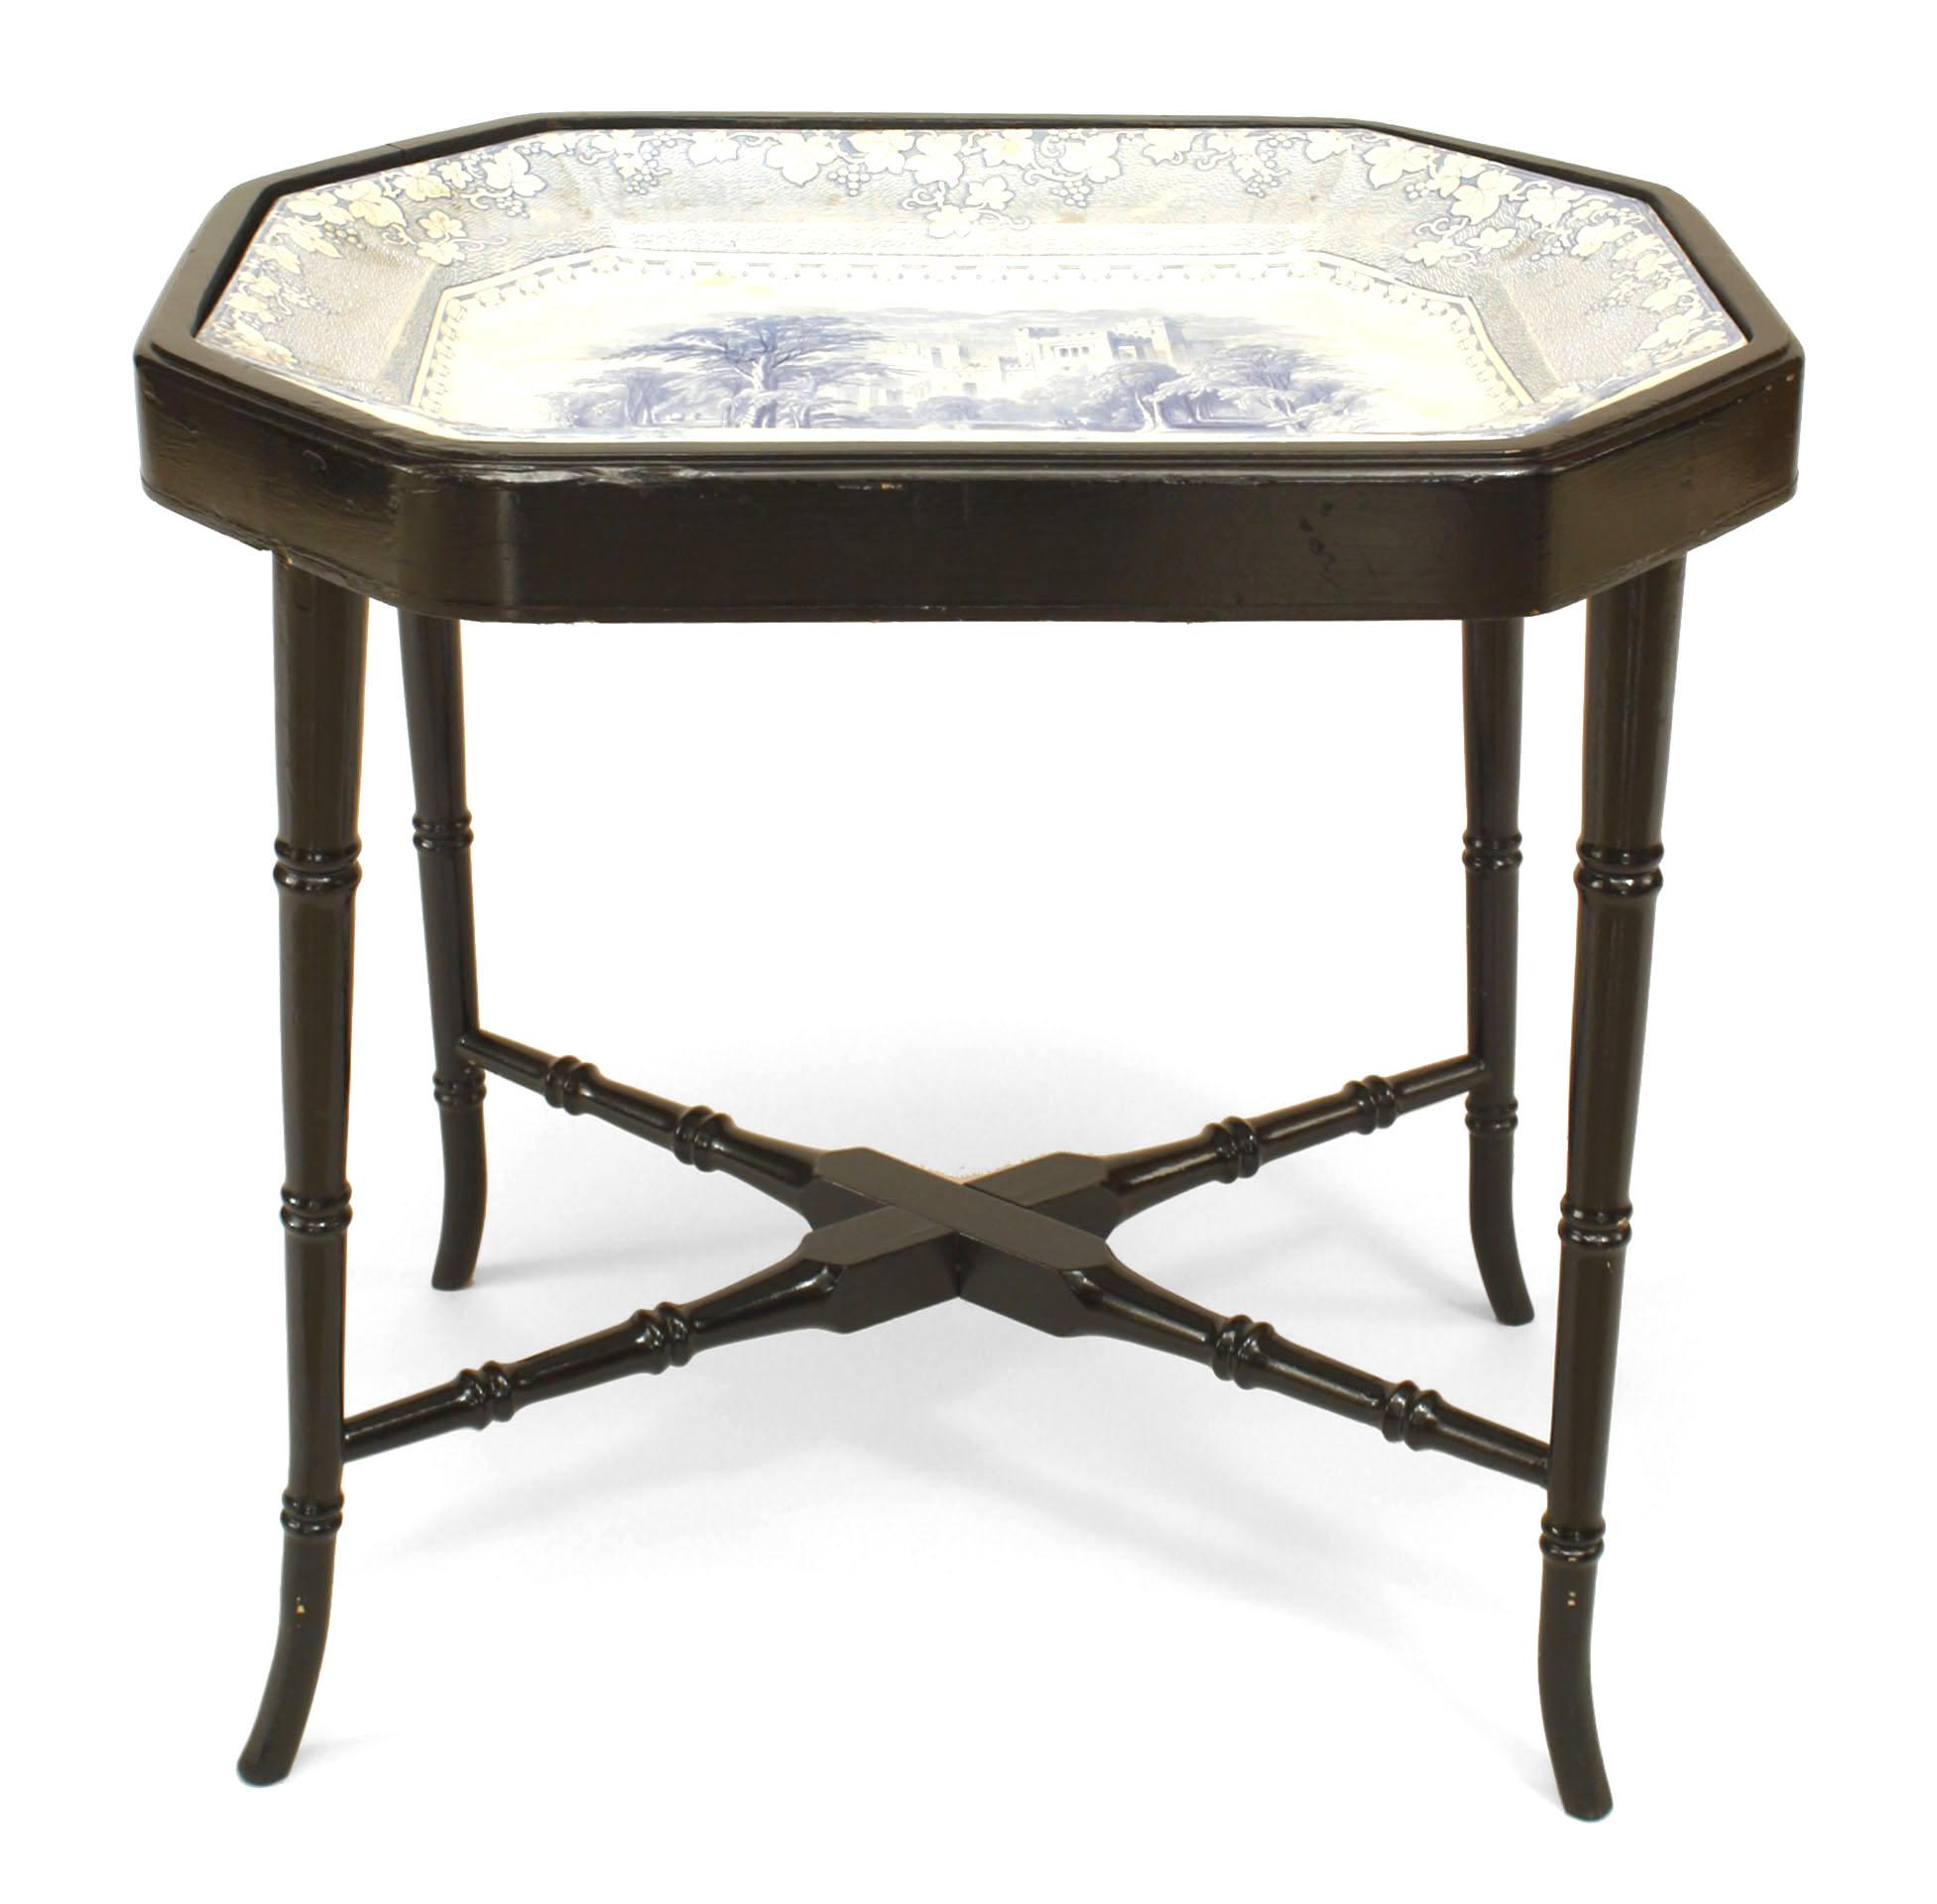 Victorian End Table Traditional English Victorian Coffee Table For Sale - Image 3 of 3